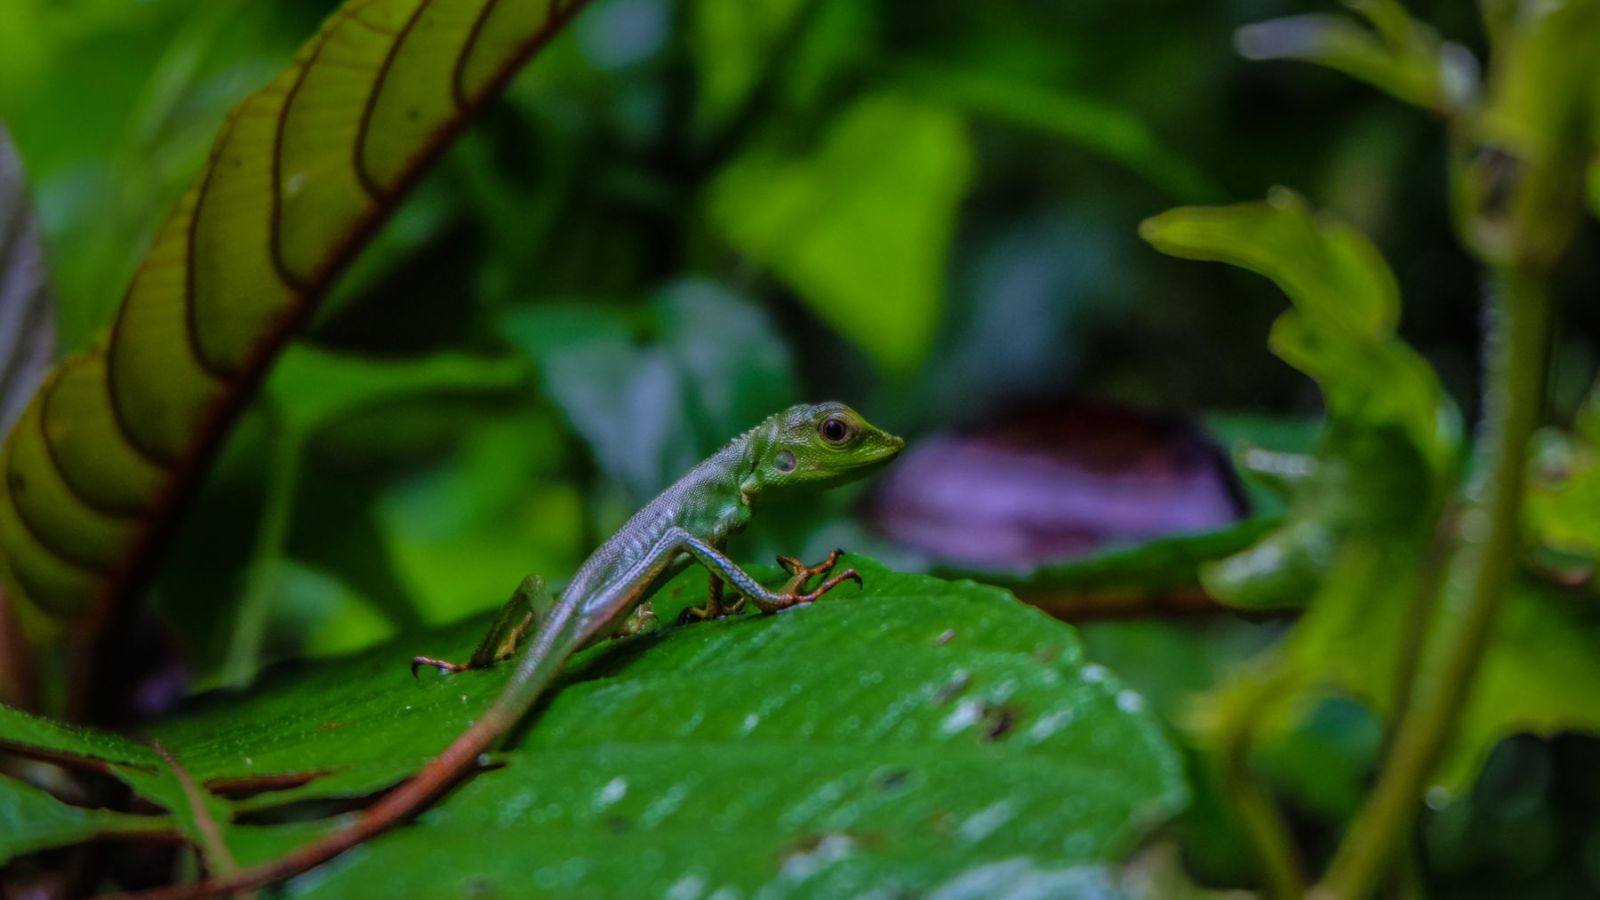 photo of a iguana in gunung leuser national park, sumatra.